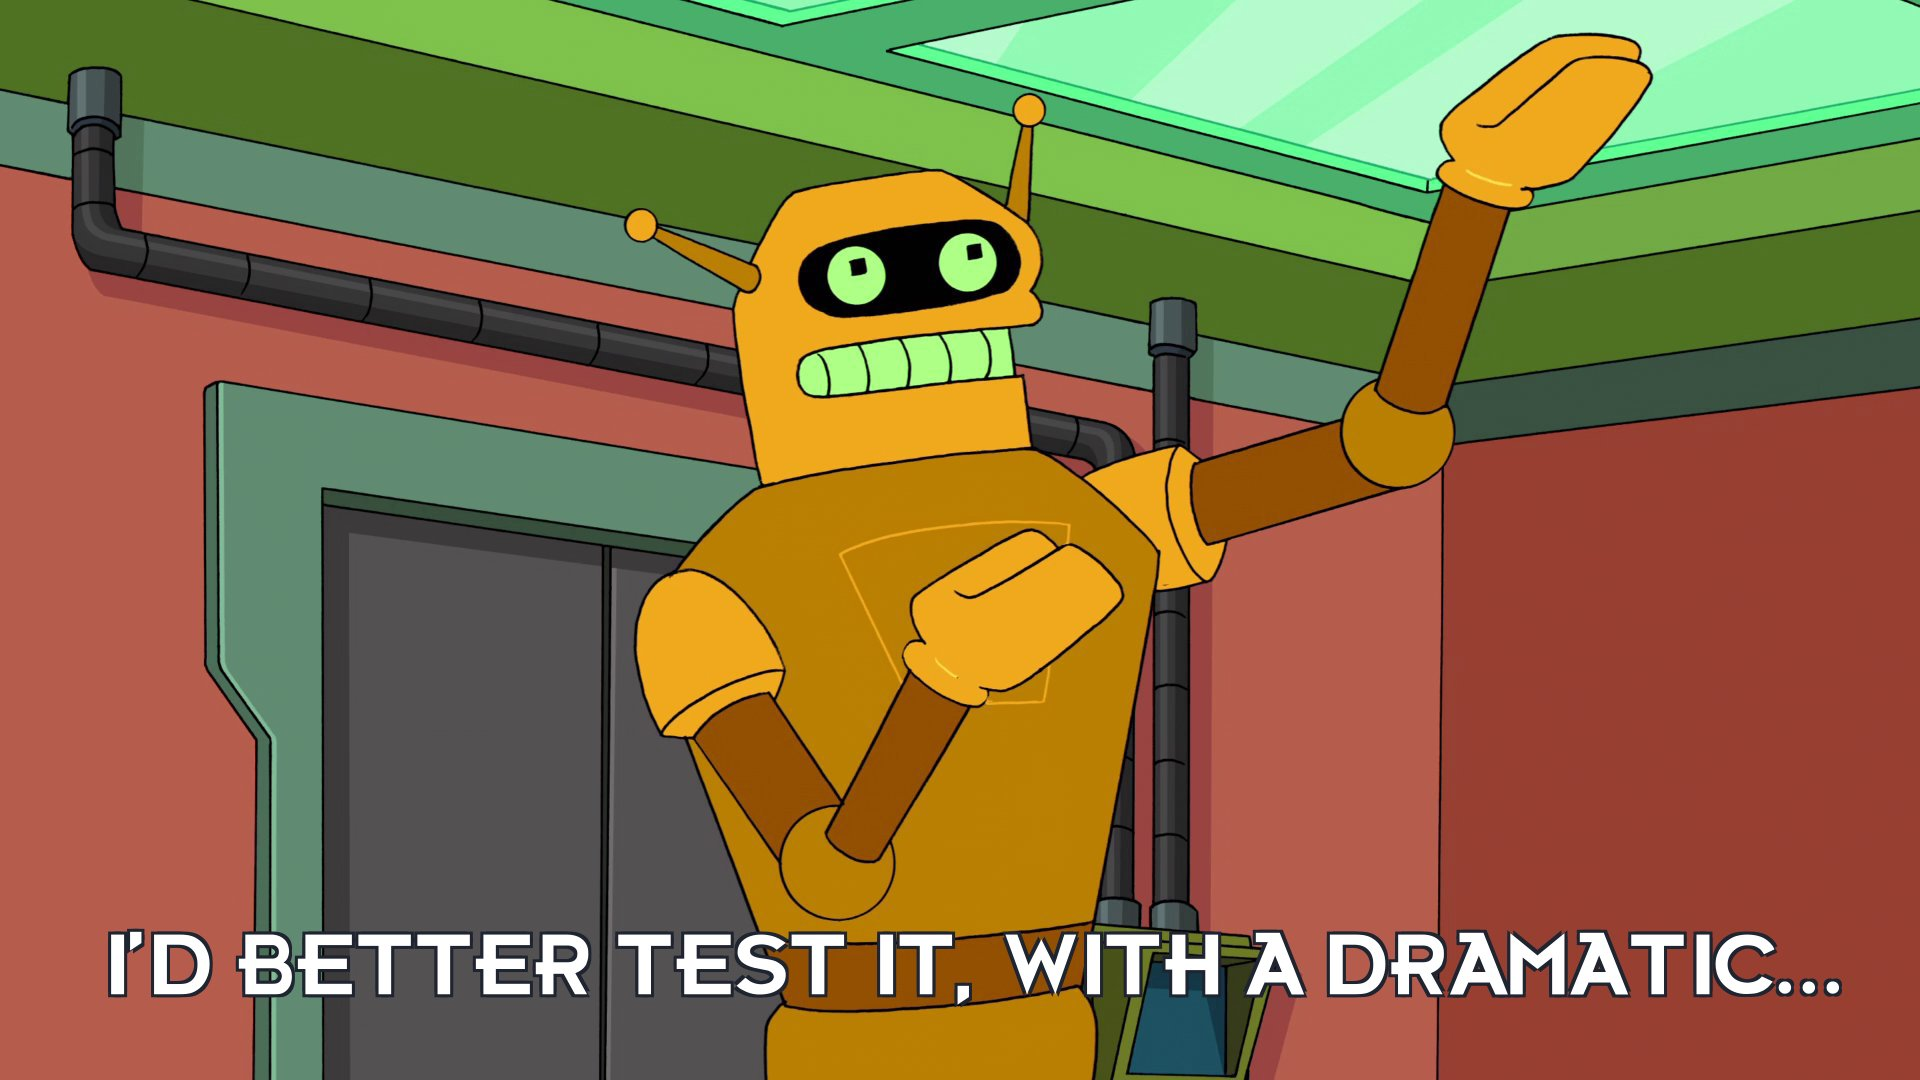 Calculon: I'd better test it, with a dramatic...